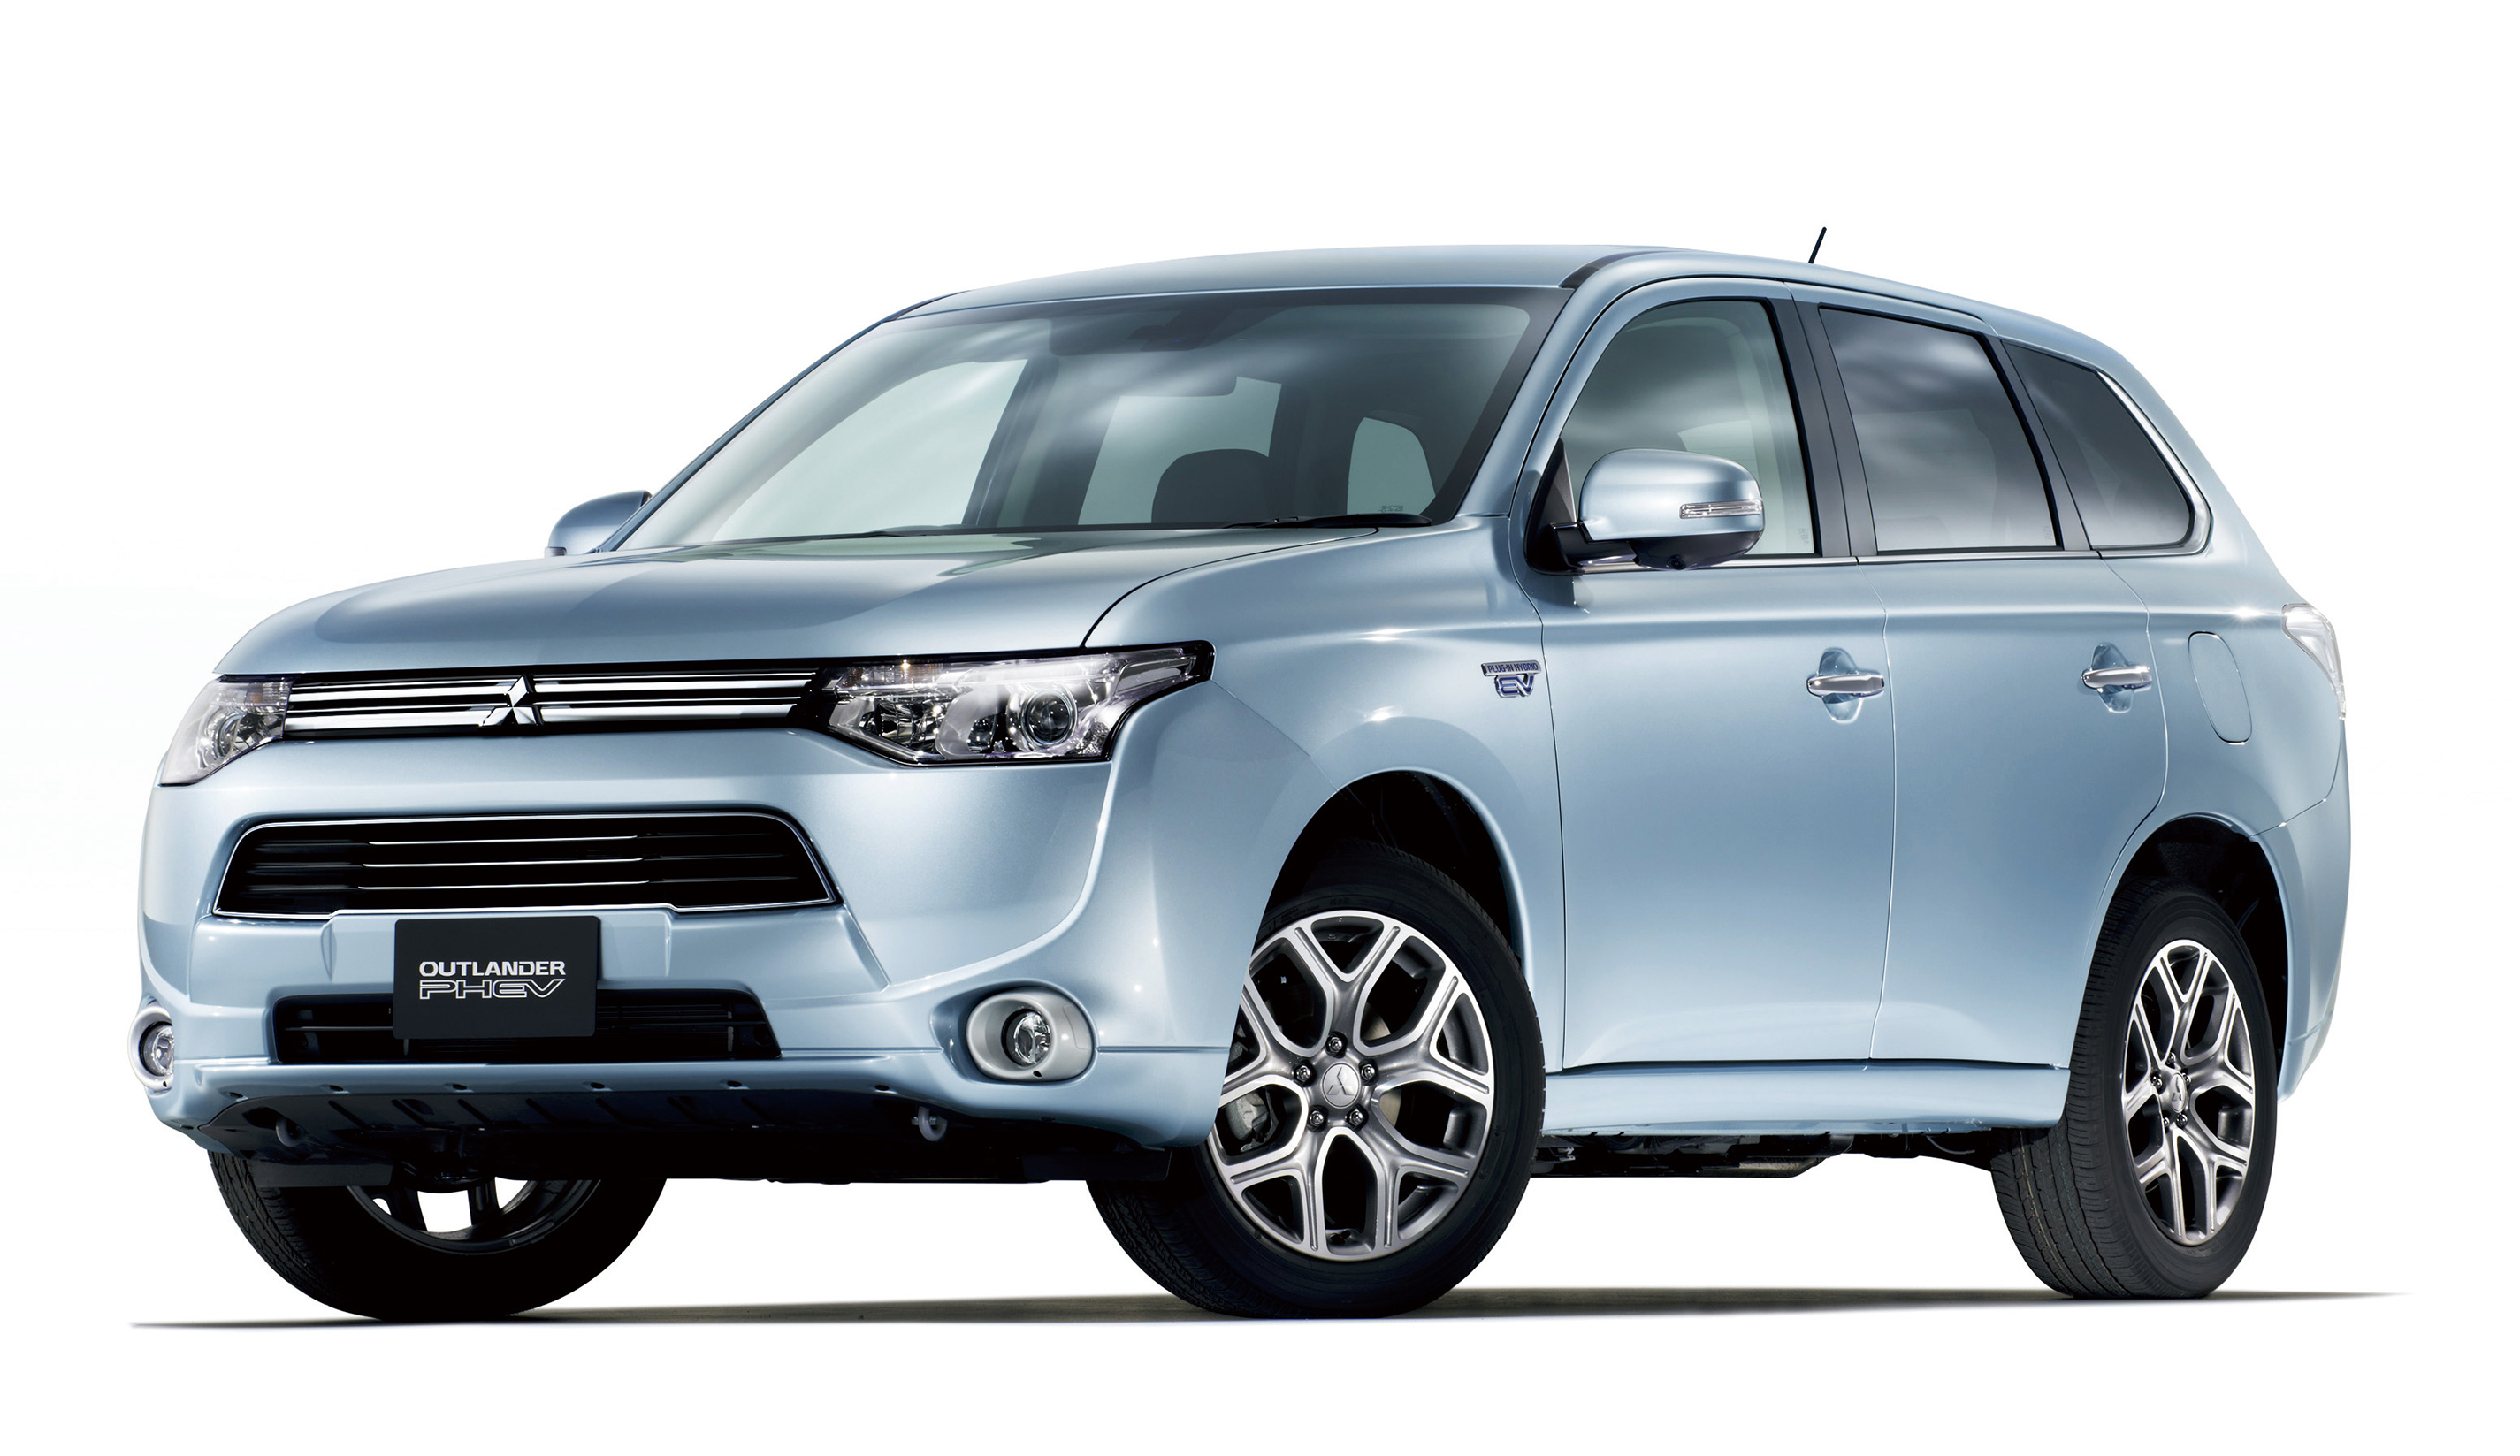 Mitsubishi Motors North America, Inc. Showcases The Upcoming  Energy Efficient And Eco Friendly New Outlander PHEV (plug In Hybrid  Electric Vehicle) ...